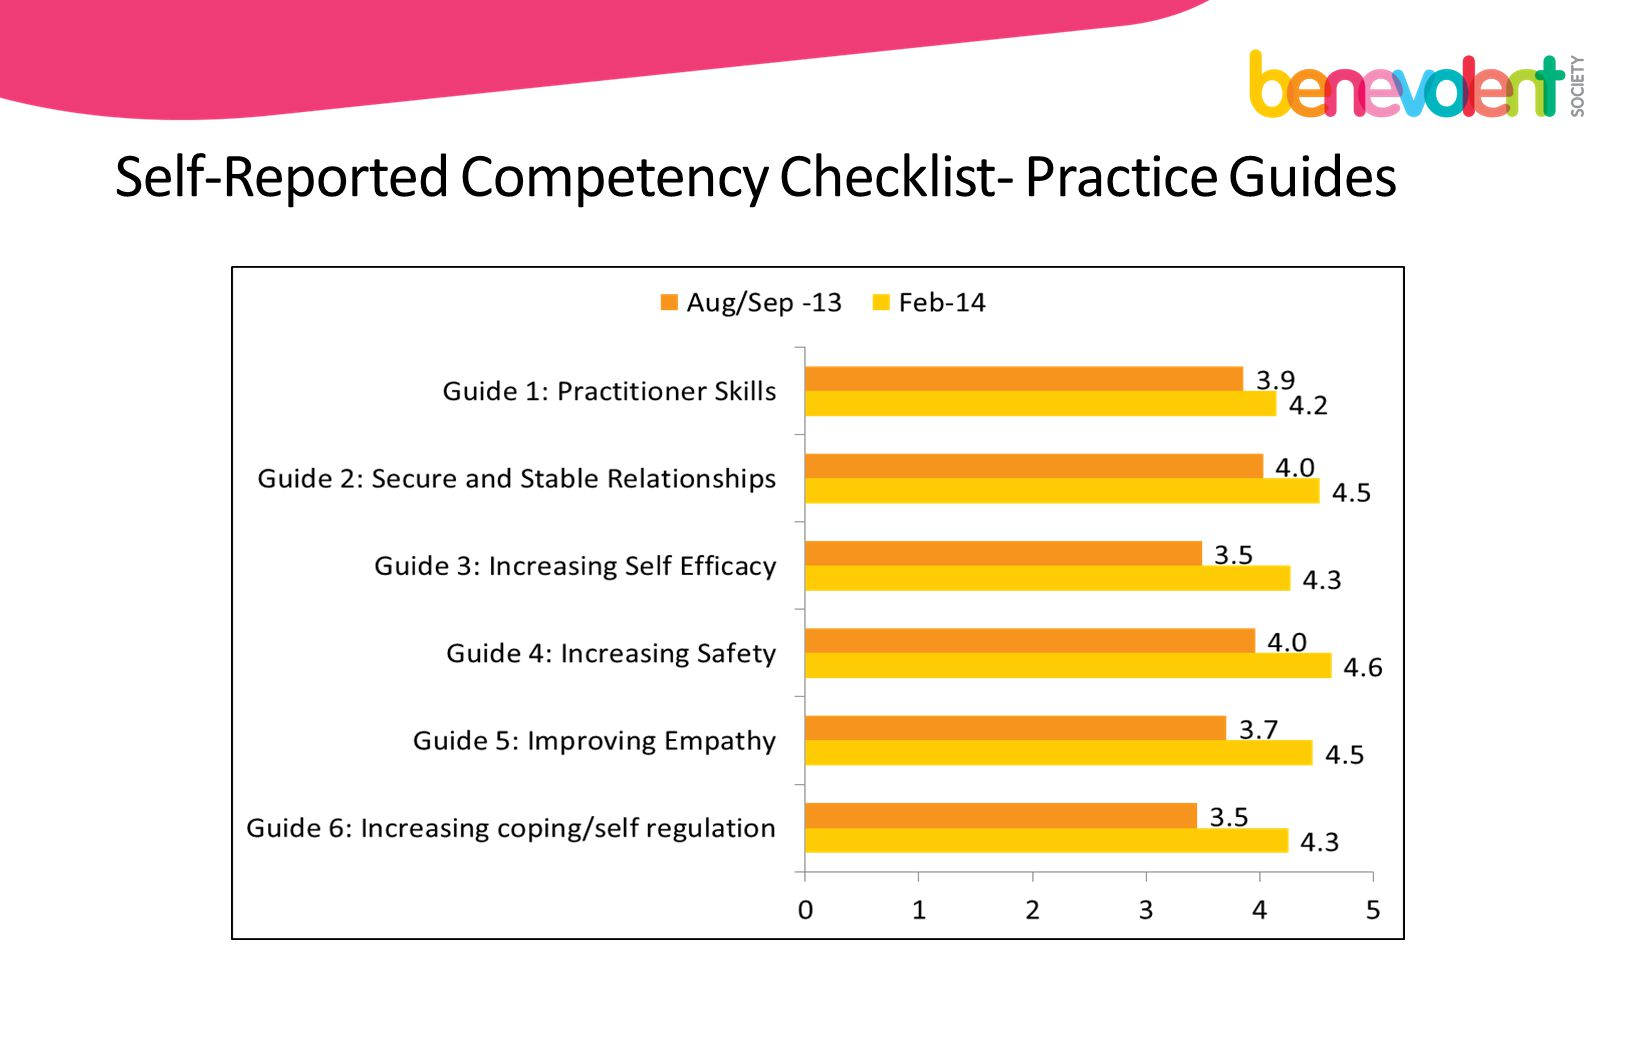 Self-Reported Competency Checklist- Practice Guides